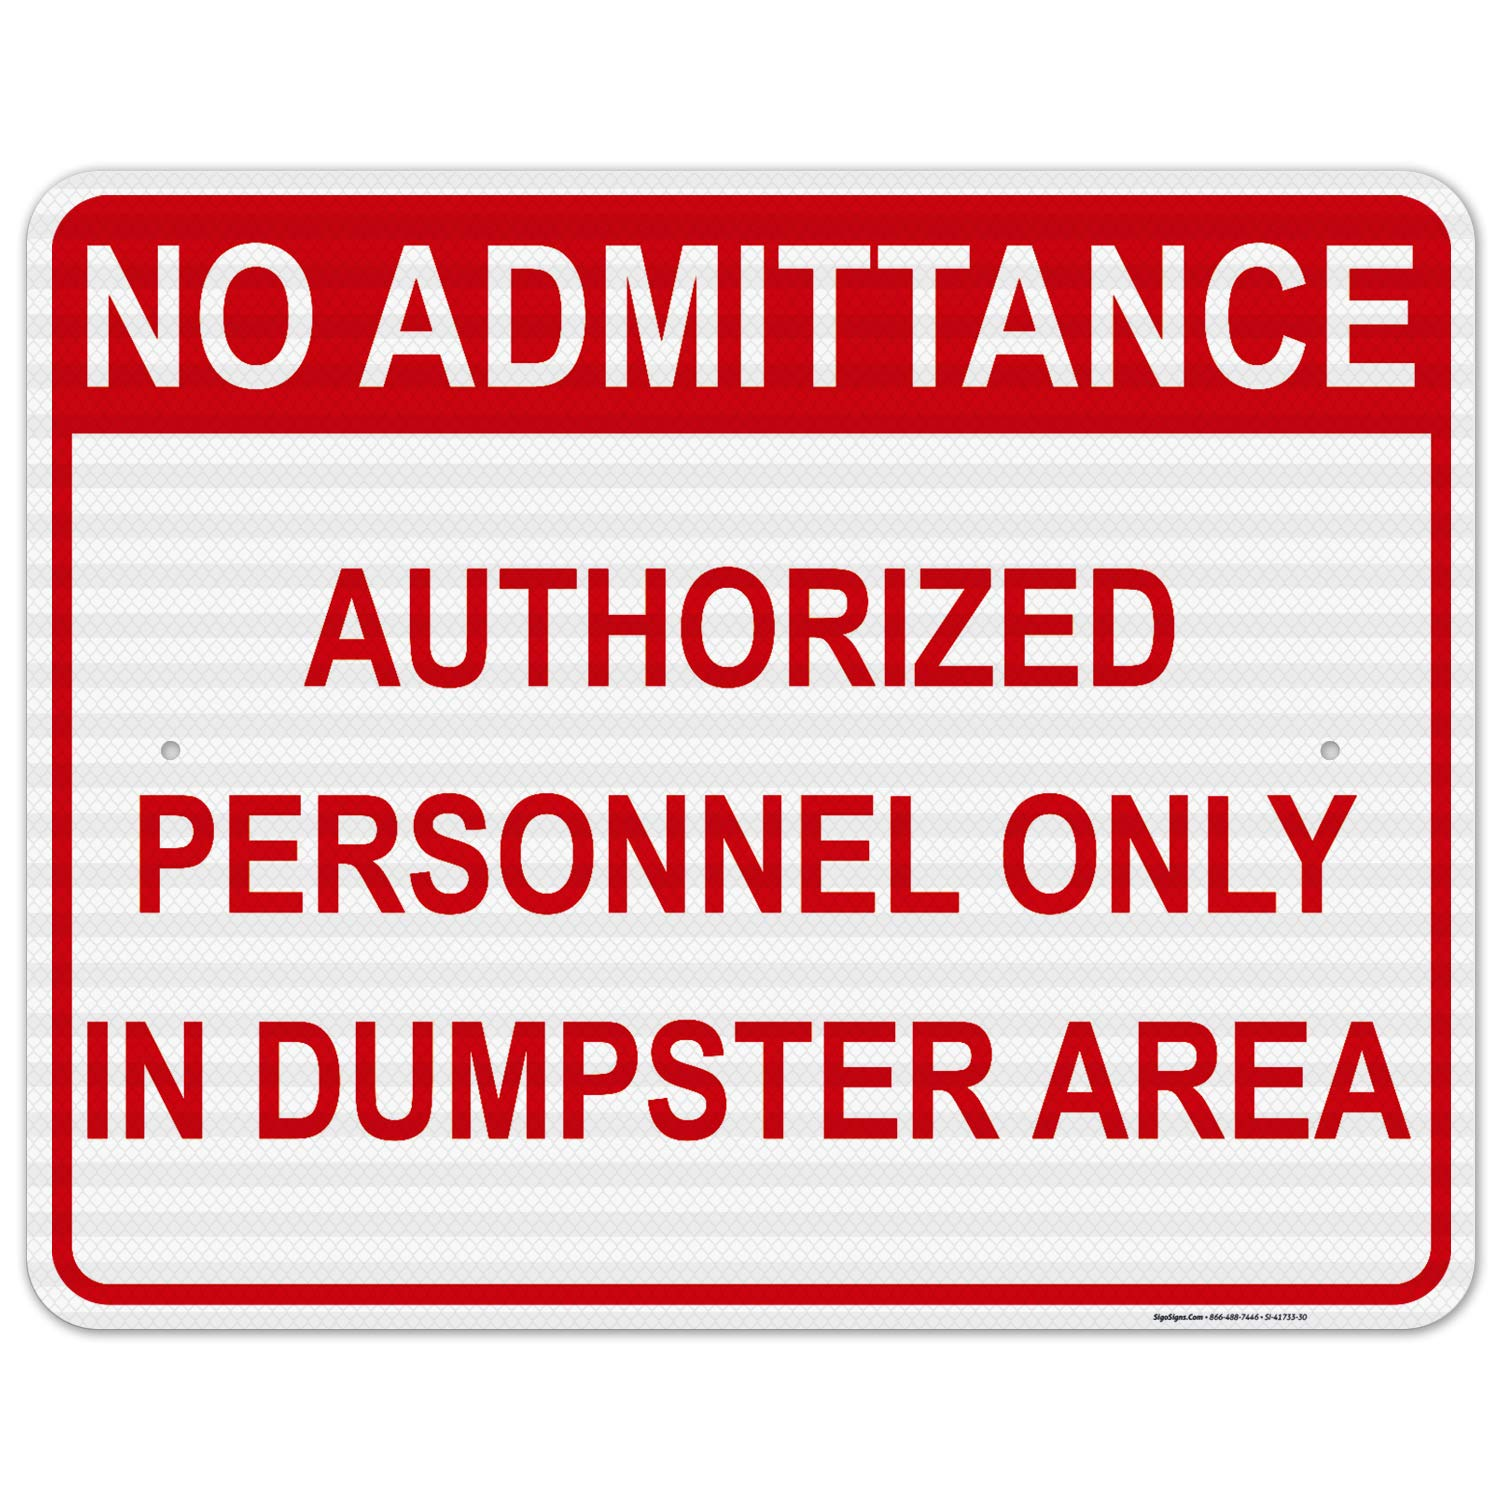 No Admittance Authorized Personnel Only in 2 Challenge the lowest price of Japan ☆ Ranking TOP15 Dumpster Sign Area